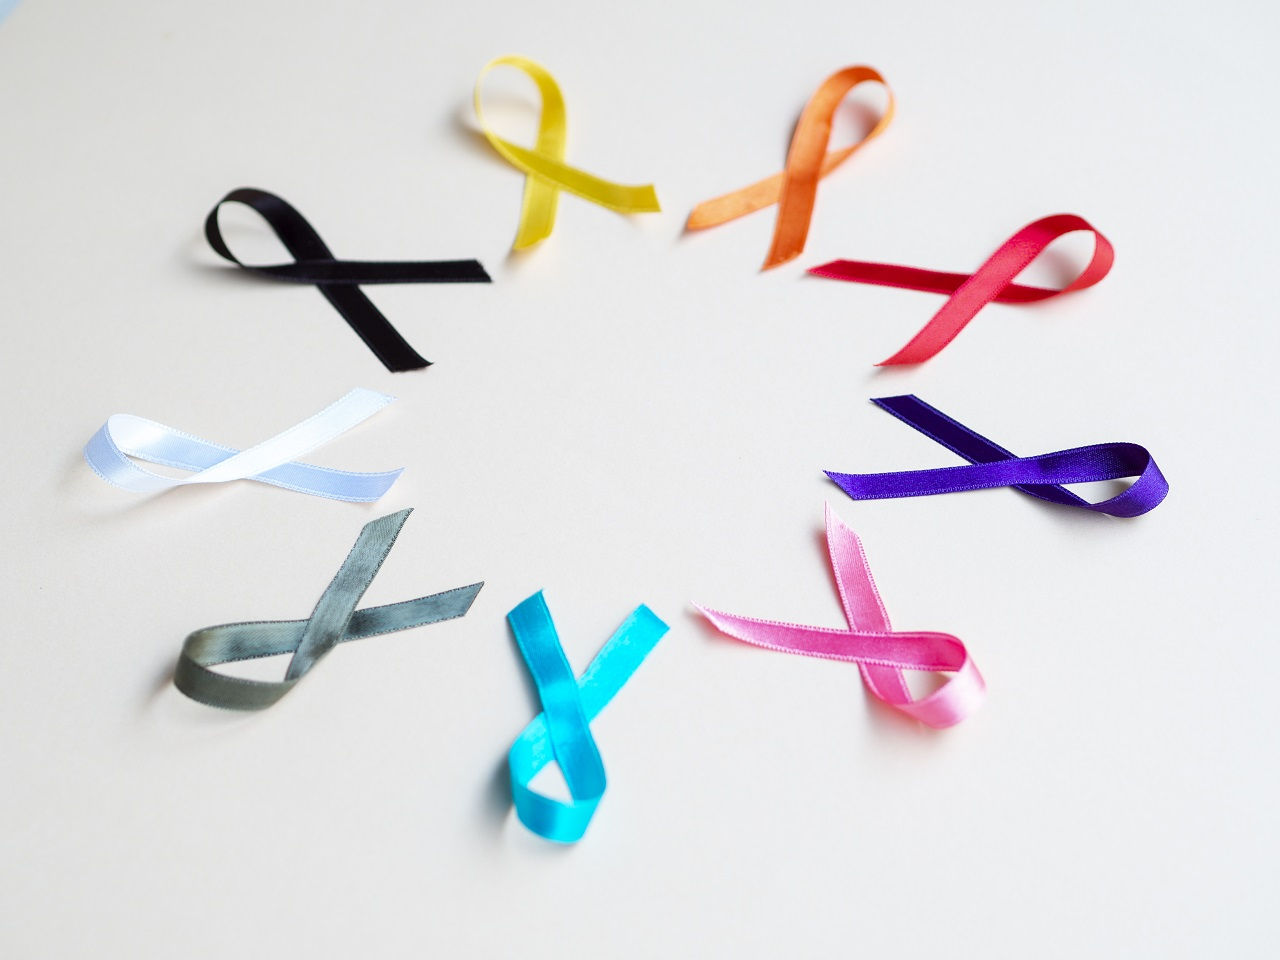 Different ribbons symbolizing the different types of cancer